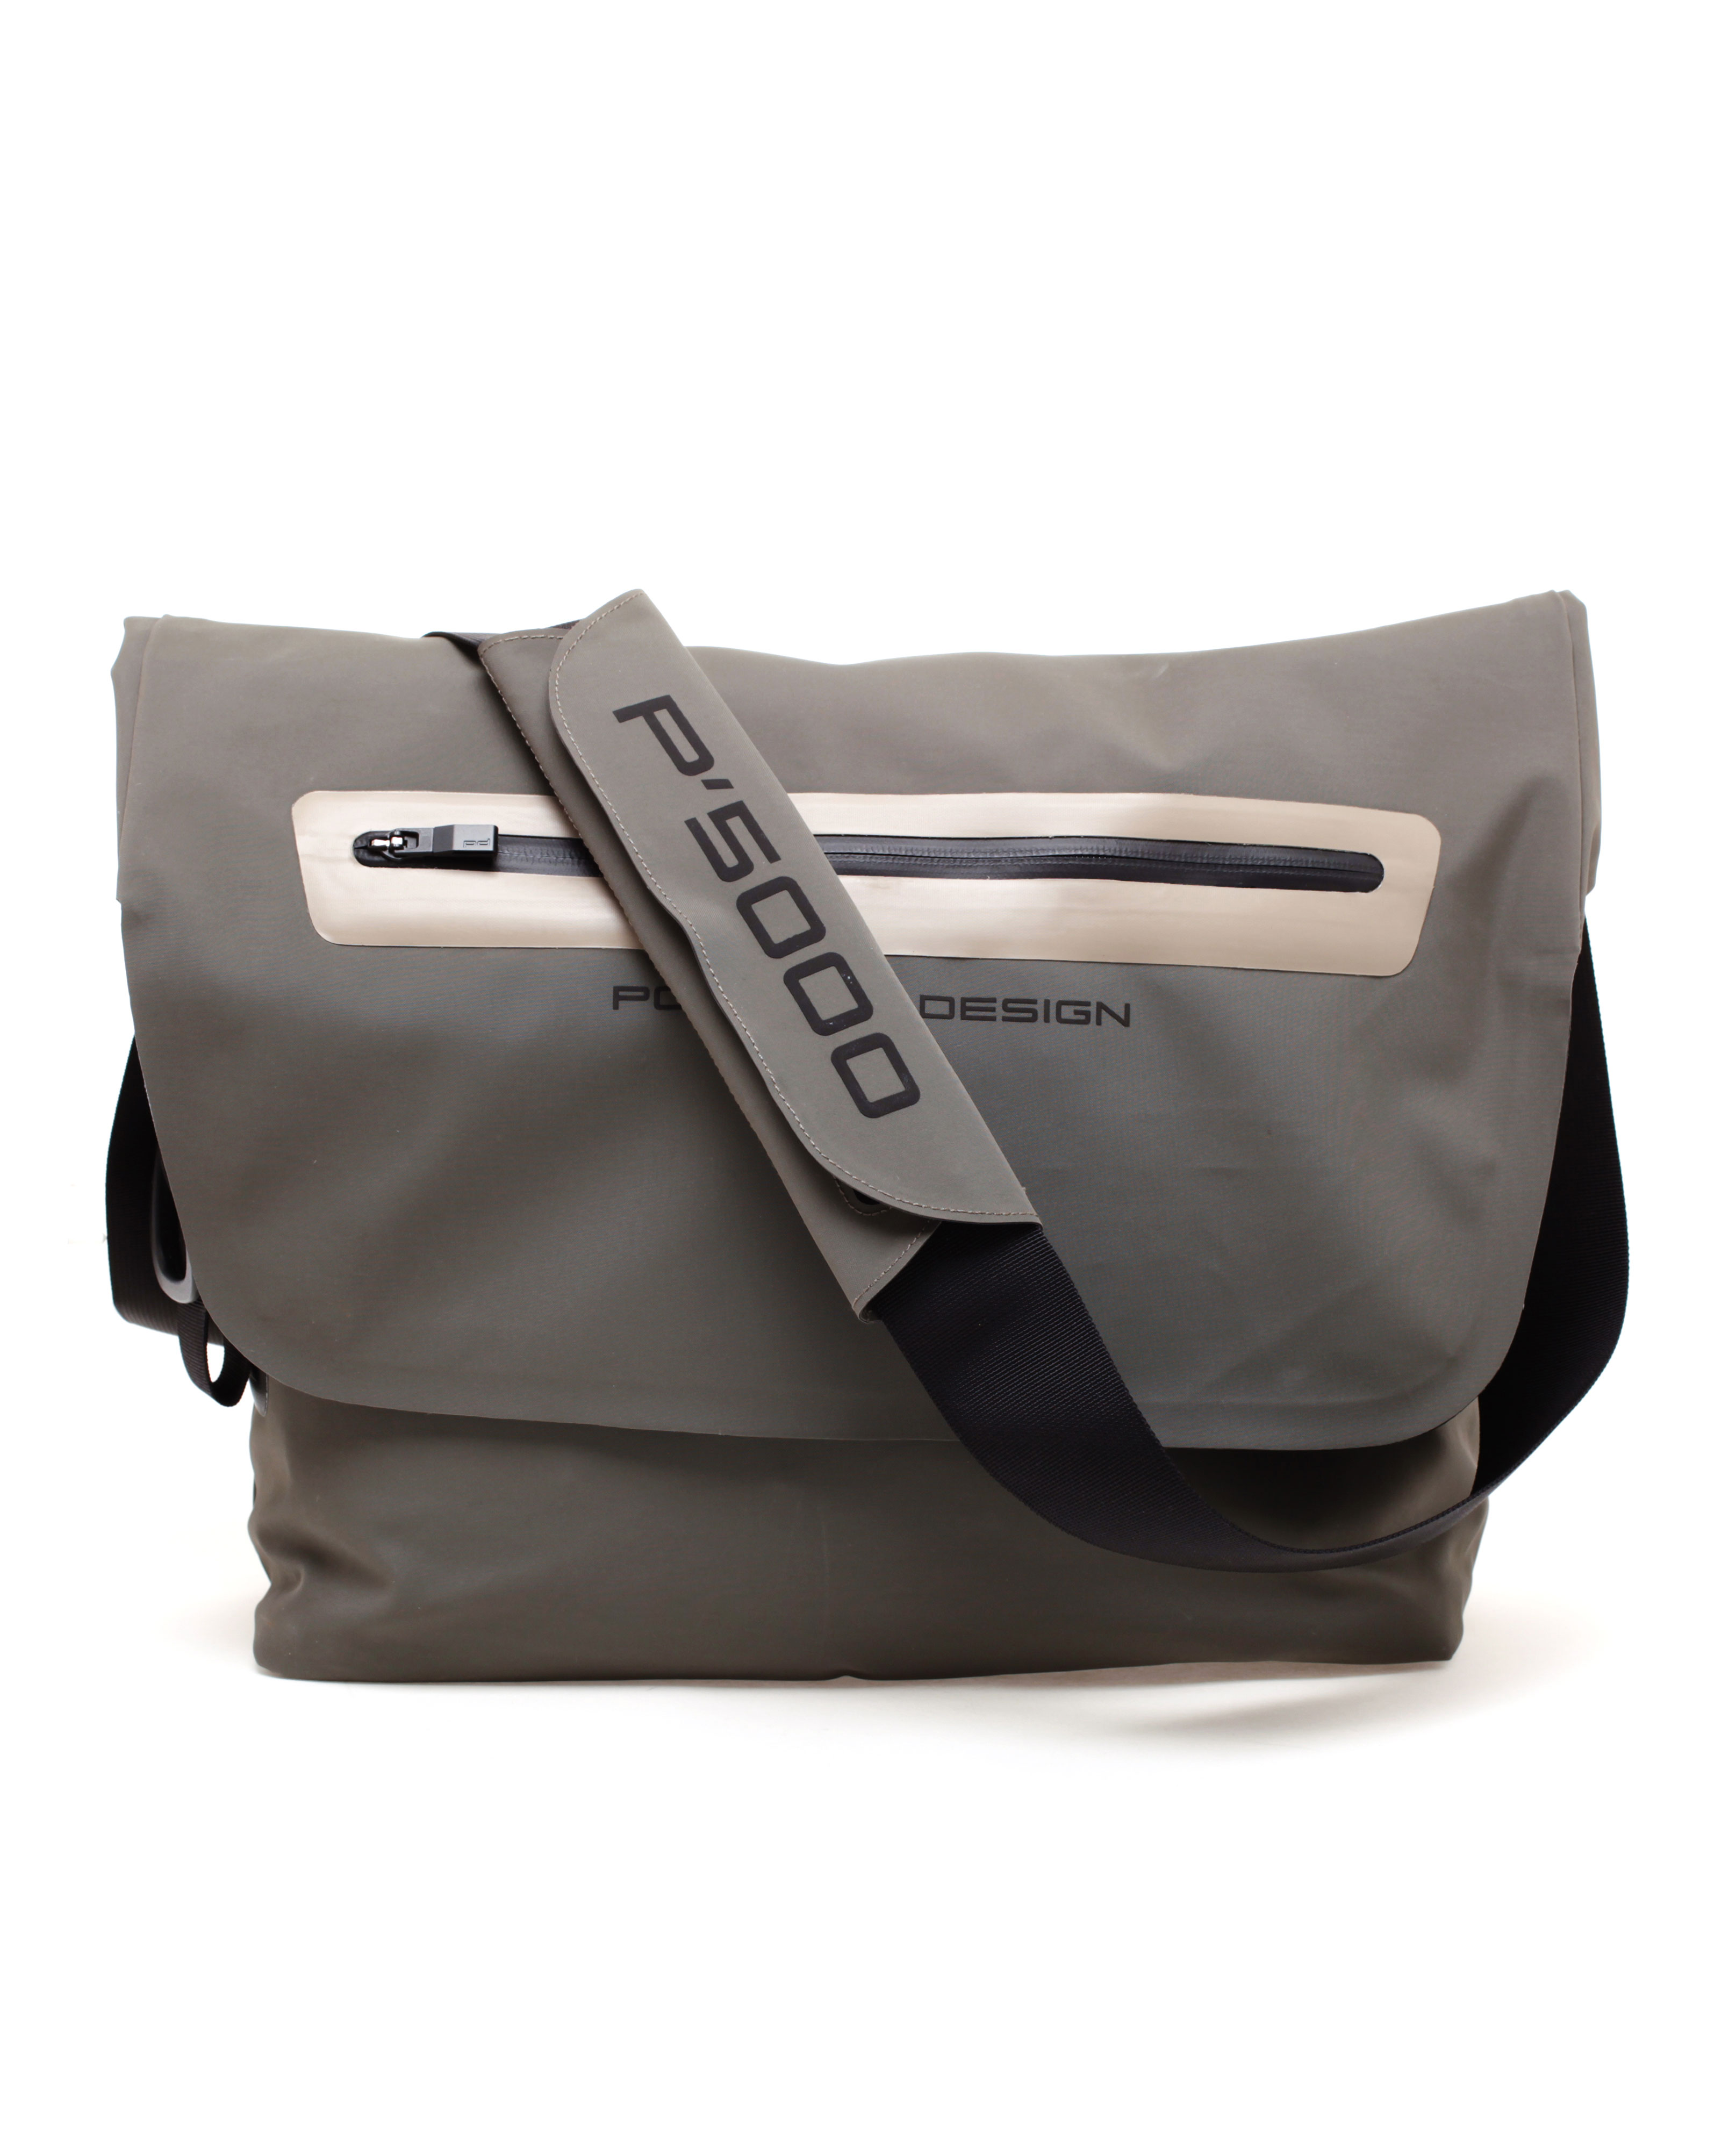 6f801a3d53b Porsche Design Navigator Messenger Bag in Gray for Men - Lyst